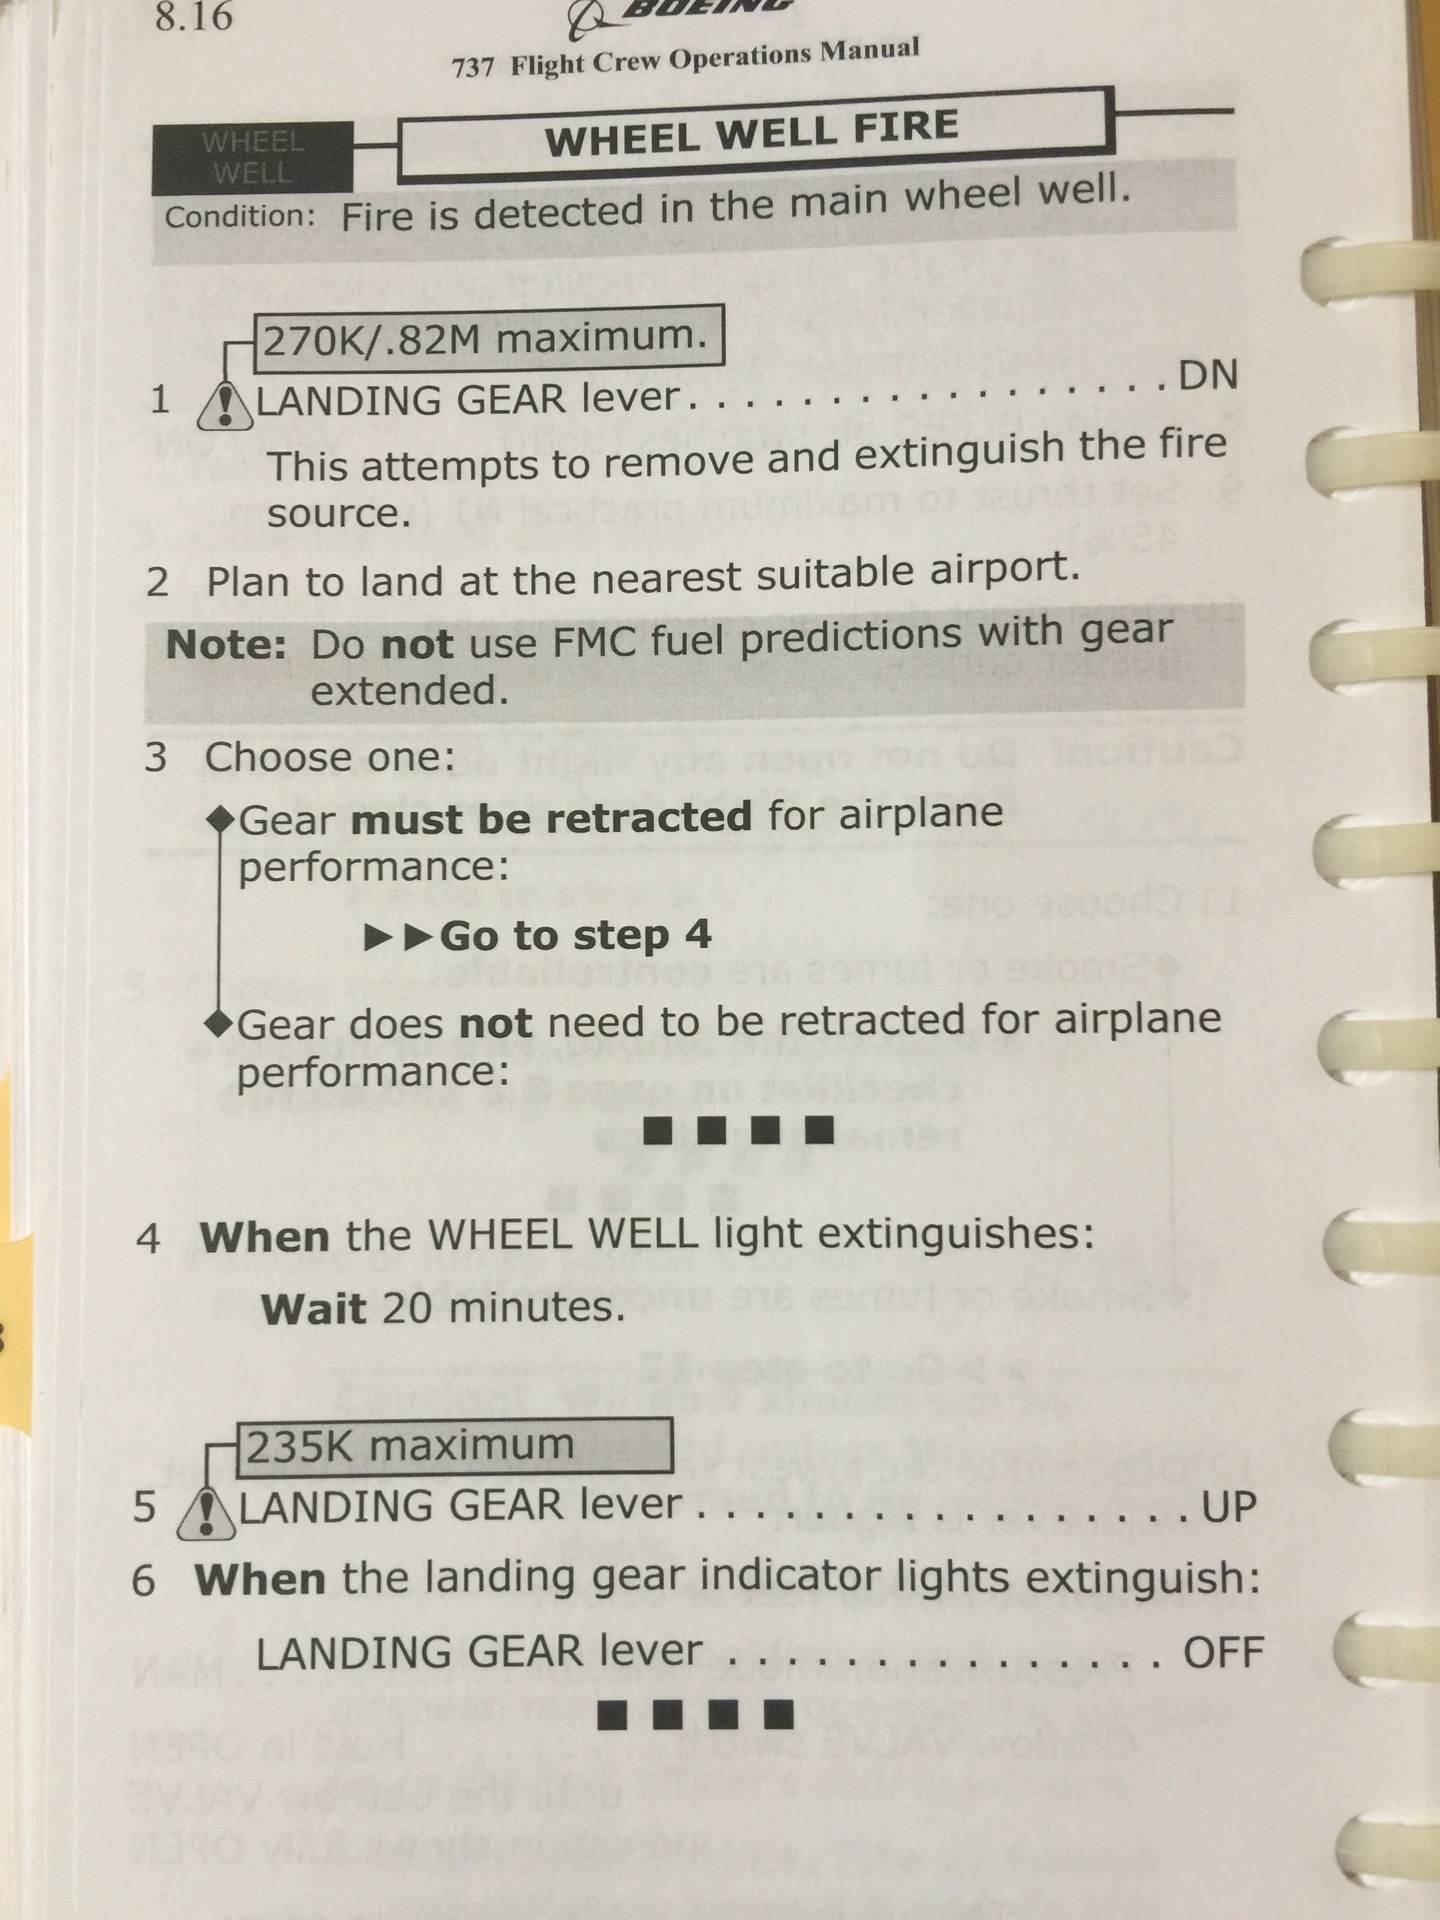 What do airline pilot checklists look like? - Quora